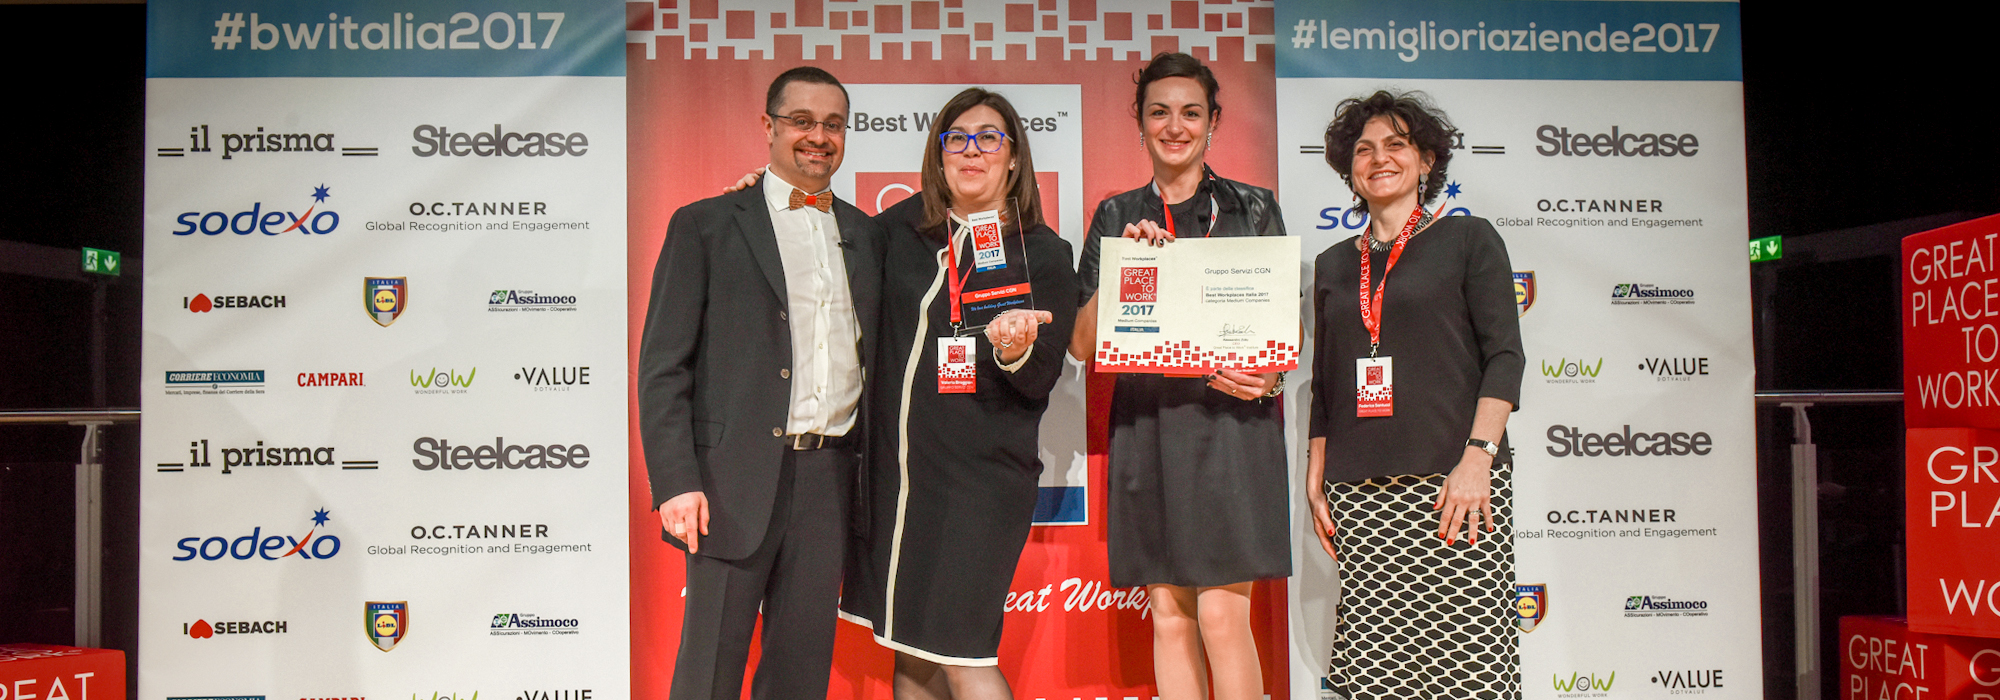 Servizi CGN è un Great Place to Work 2016